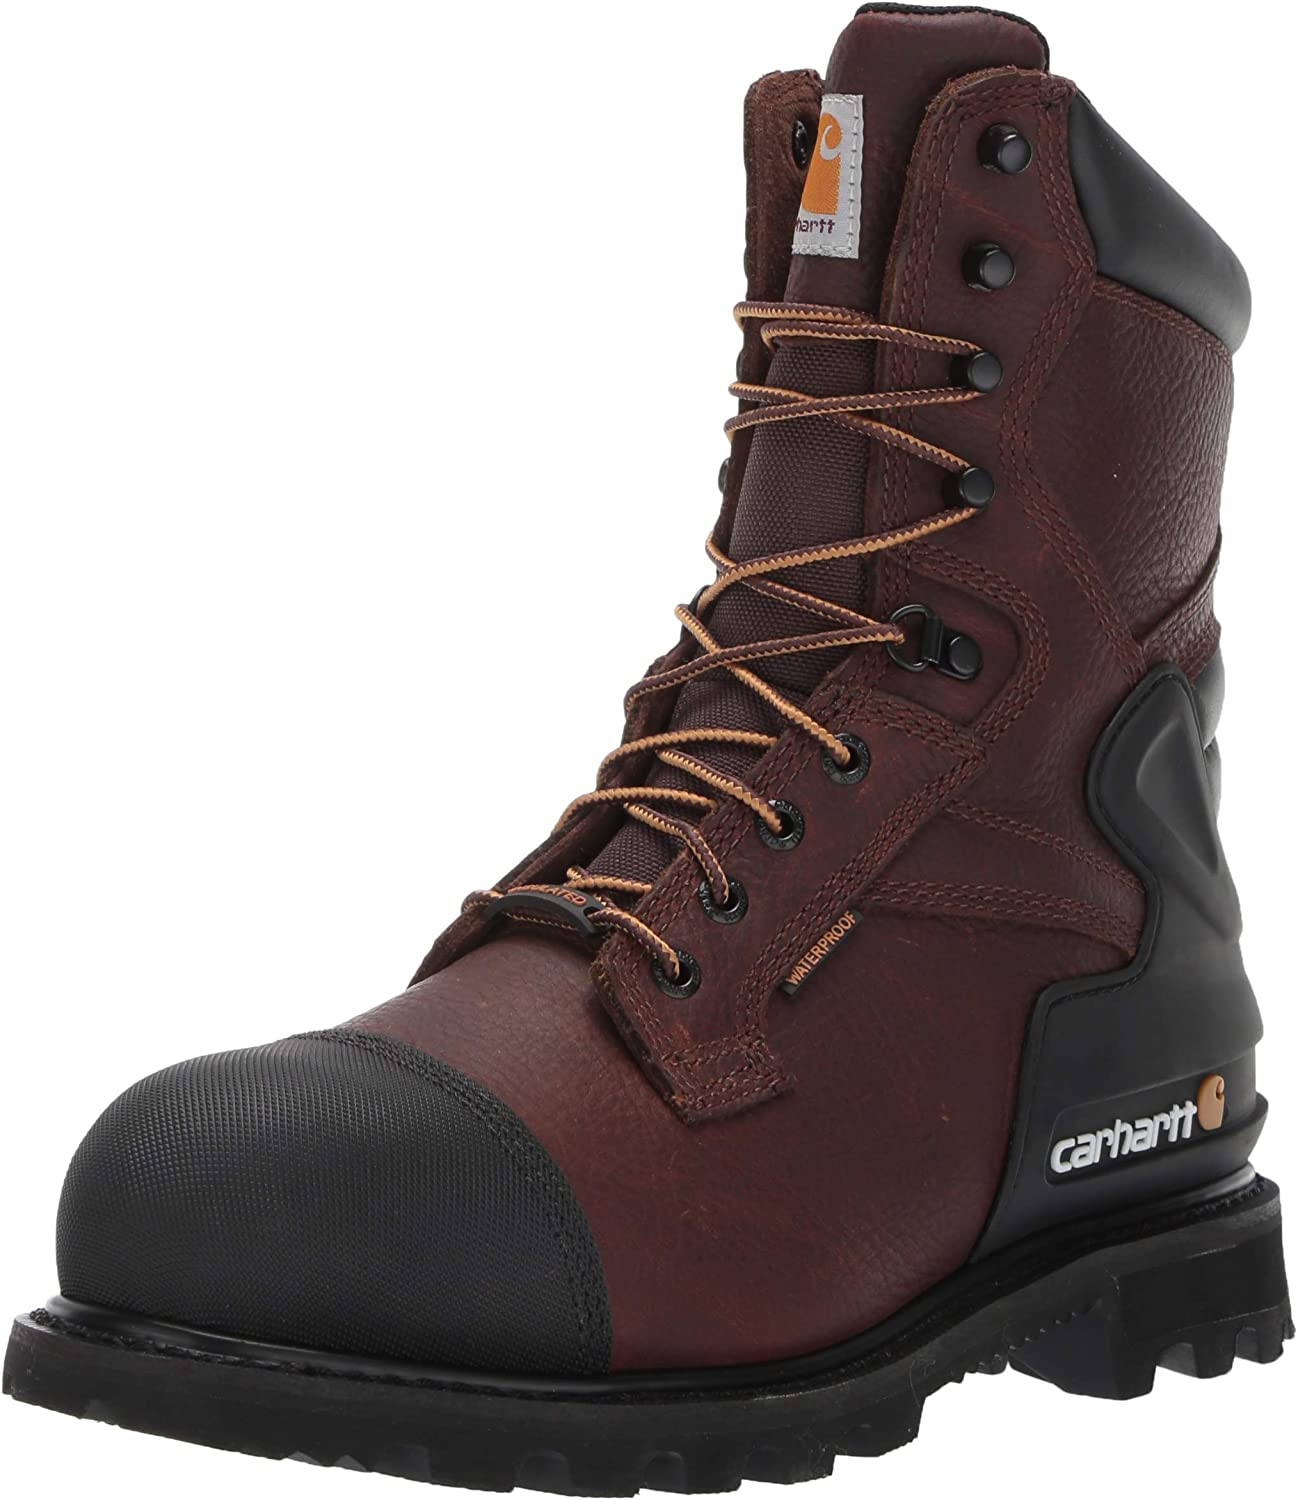 Carhartt Mens CSA 8-inch Wtrprf Insulated Work Boot Steel Safety Toe Cmr8859 Industrial Boot